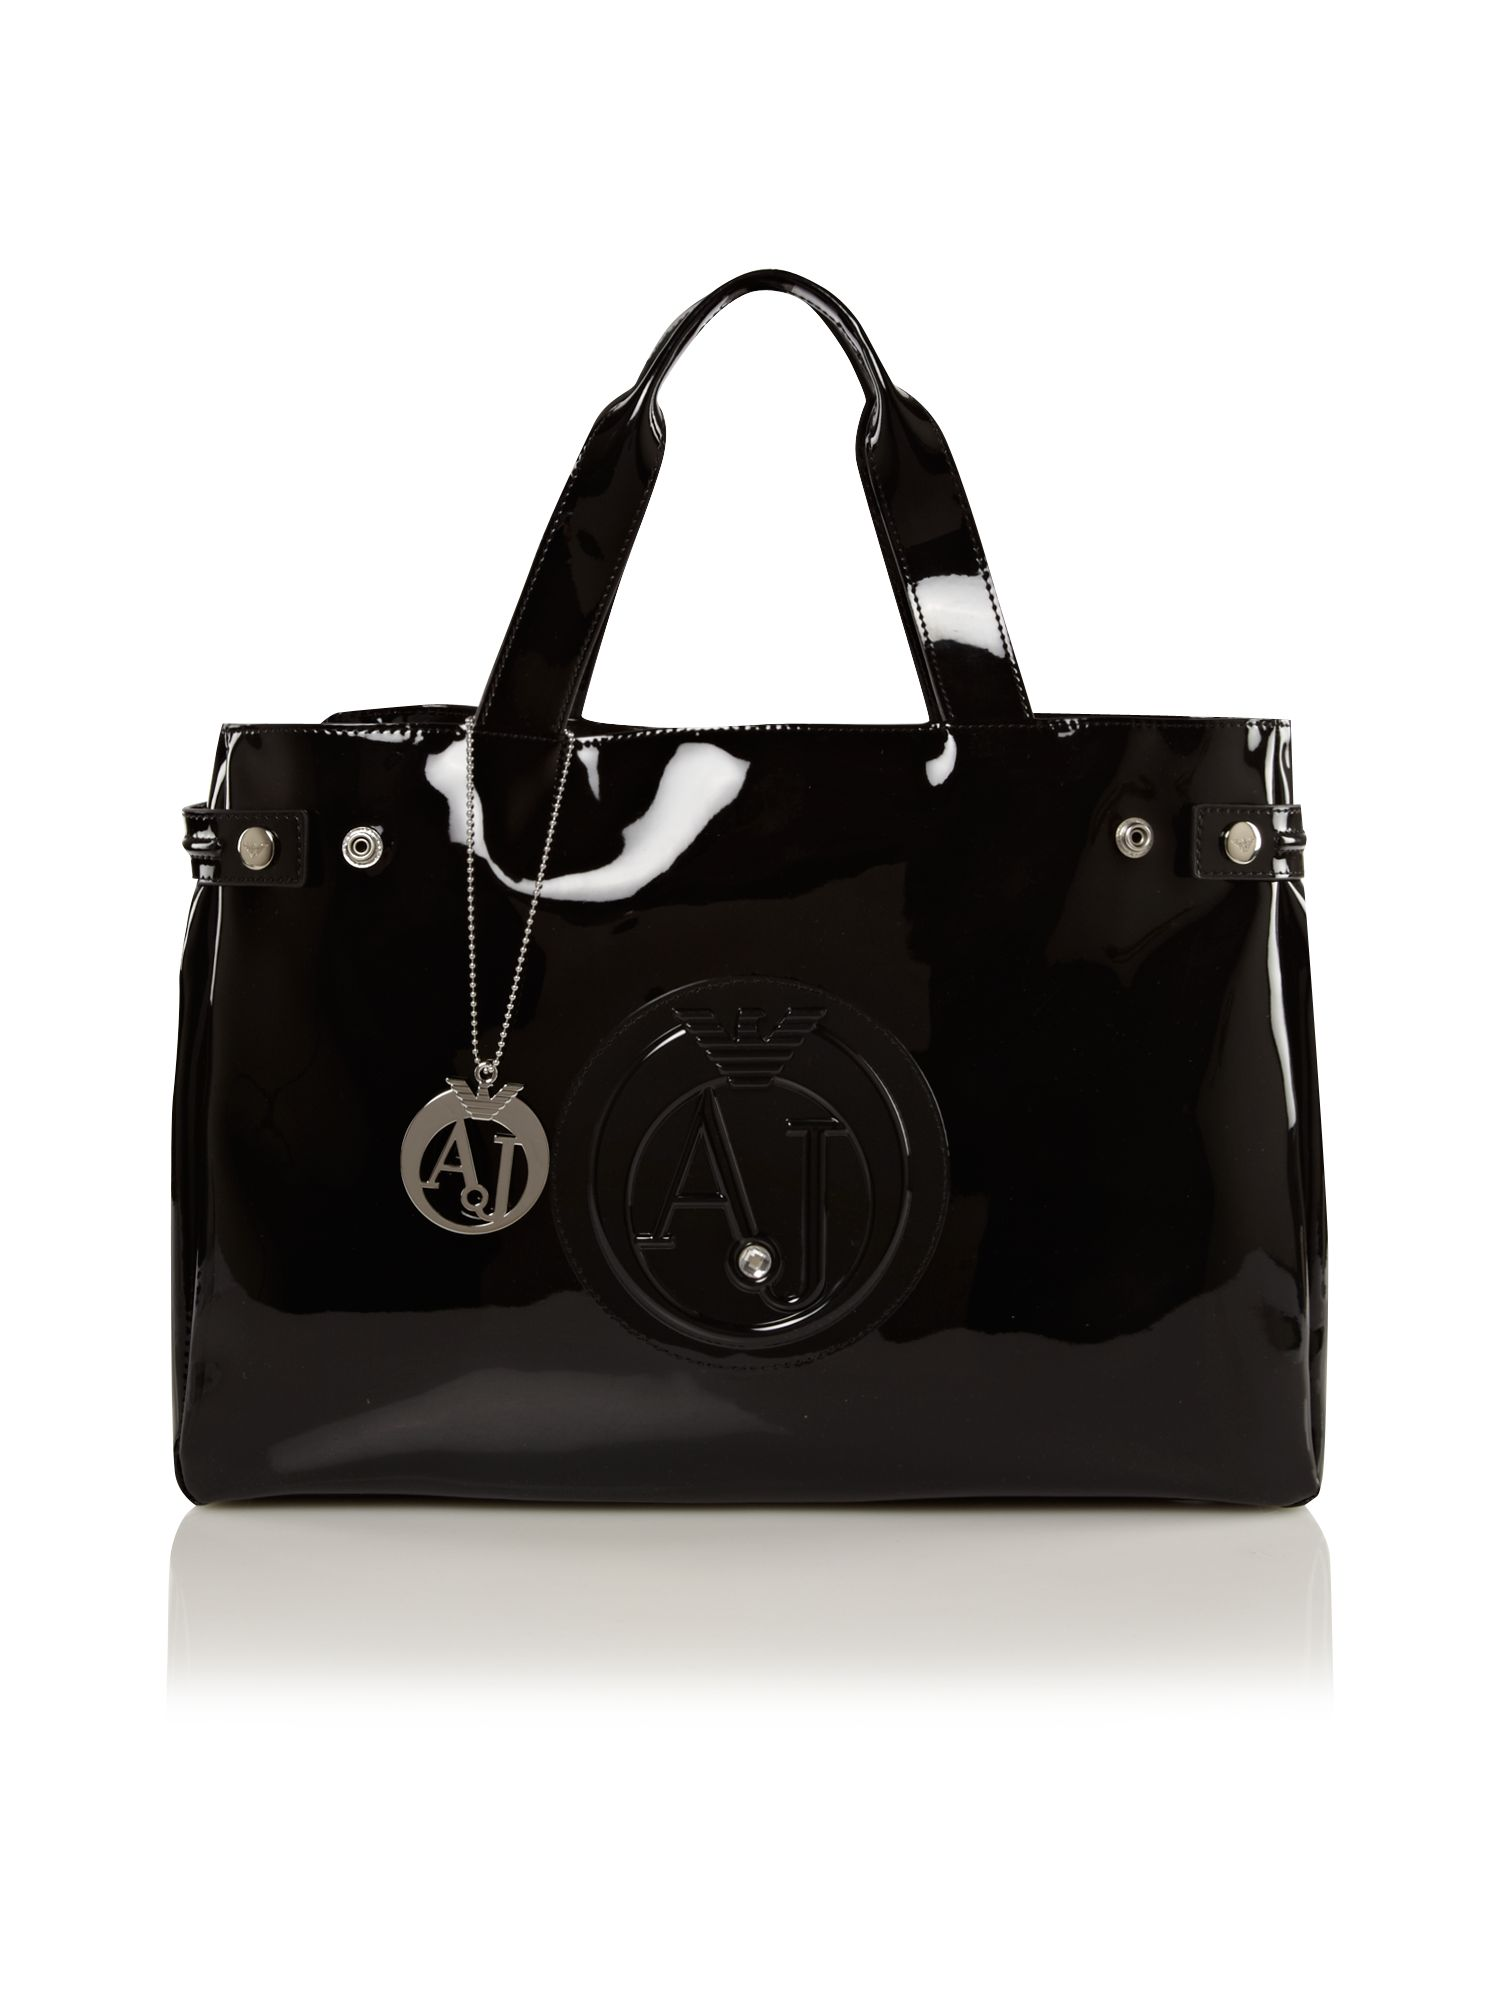 Your kind of armani bags at the best rates